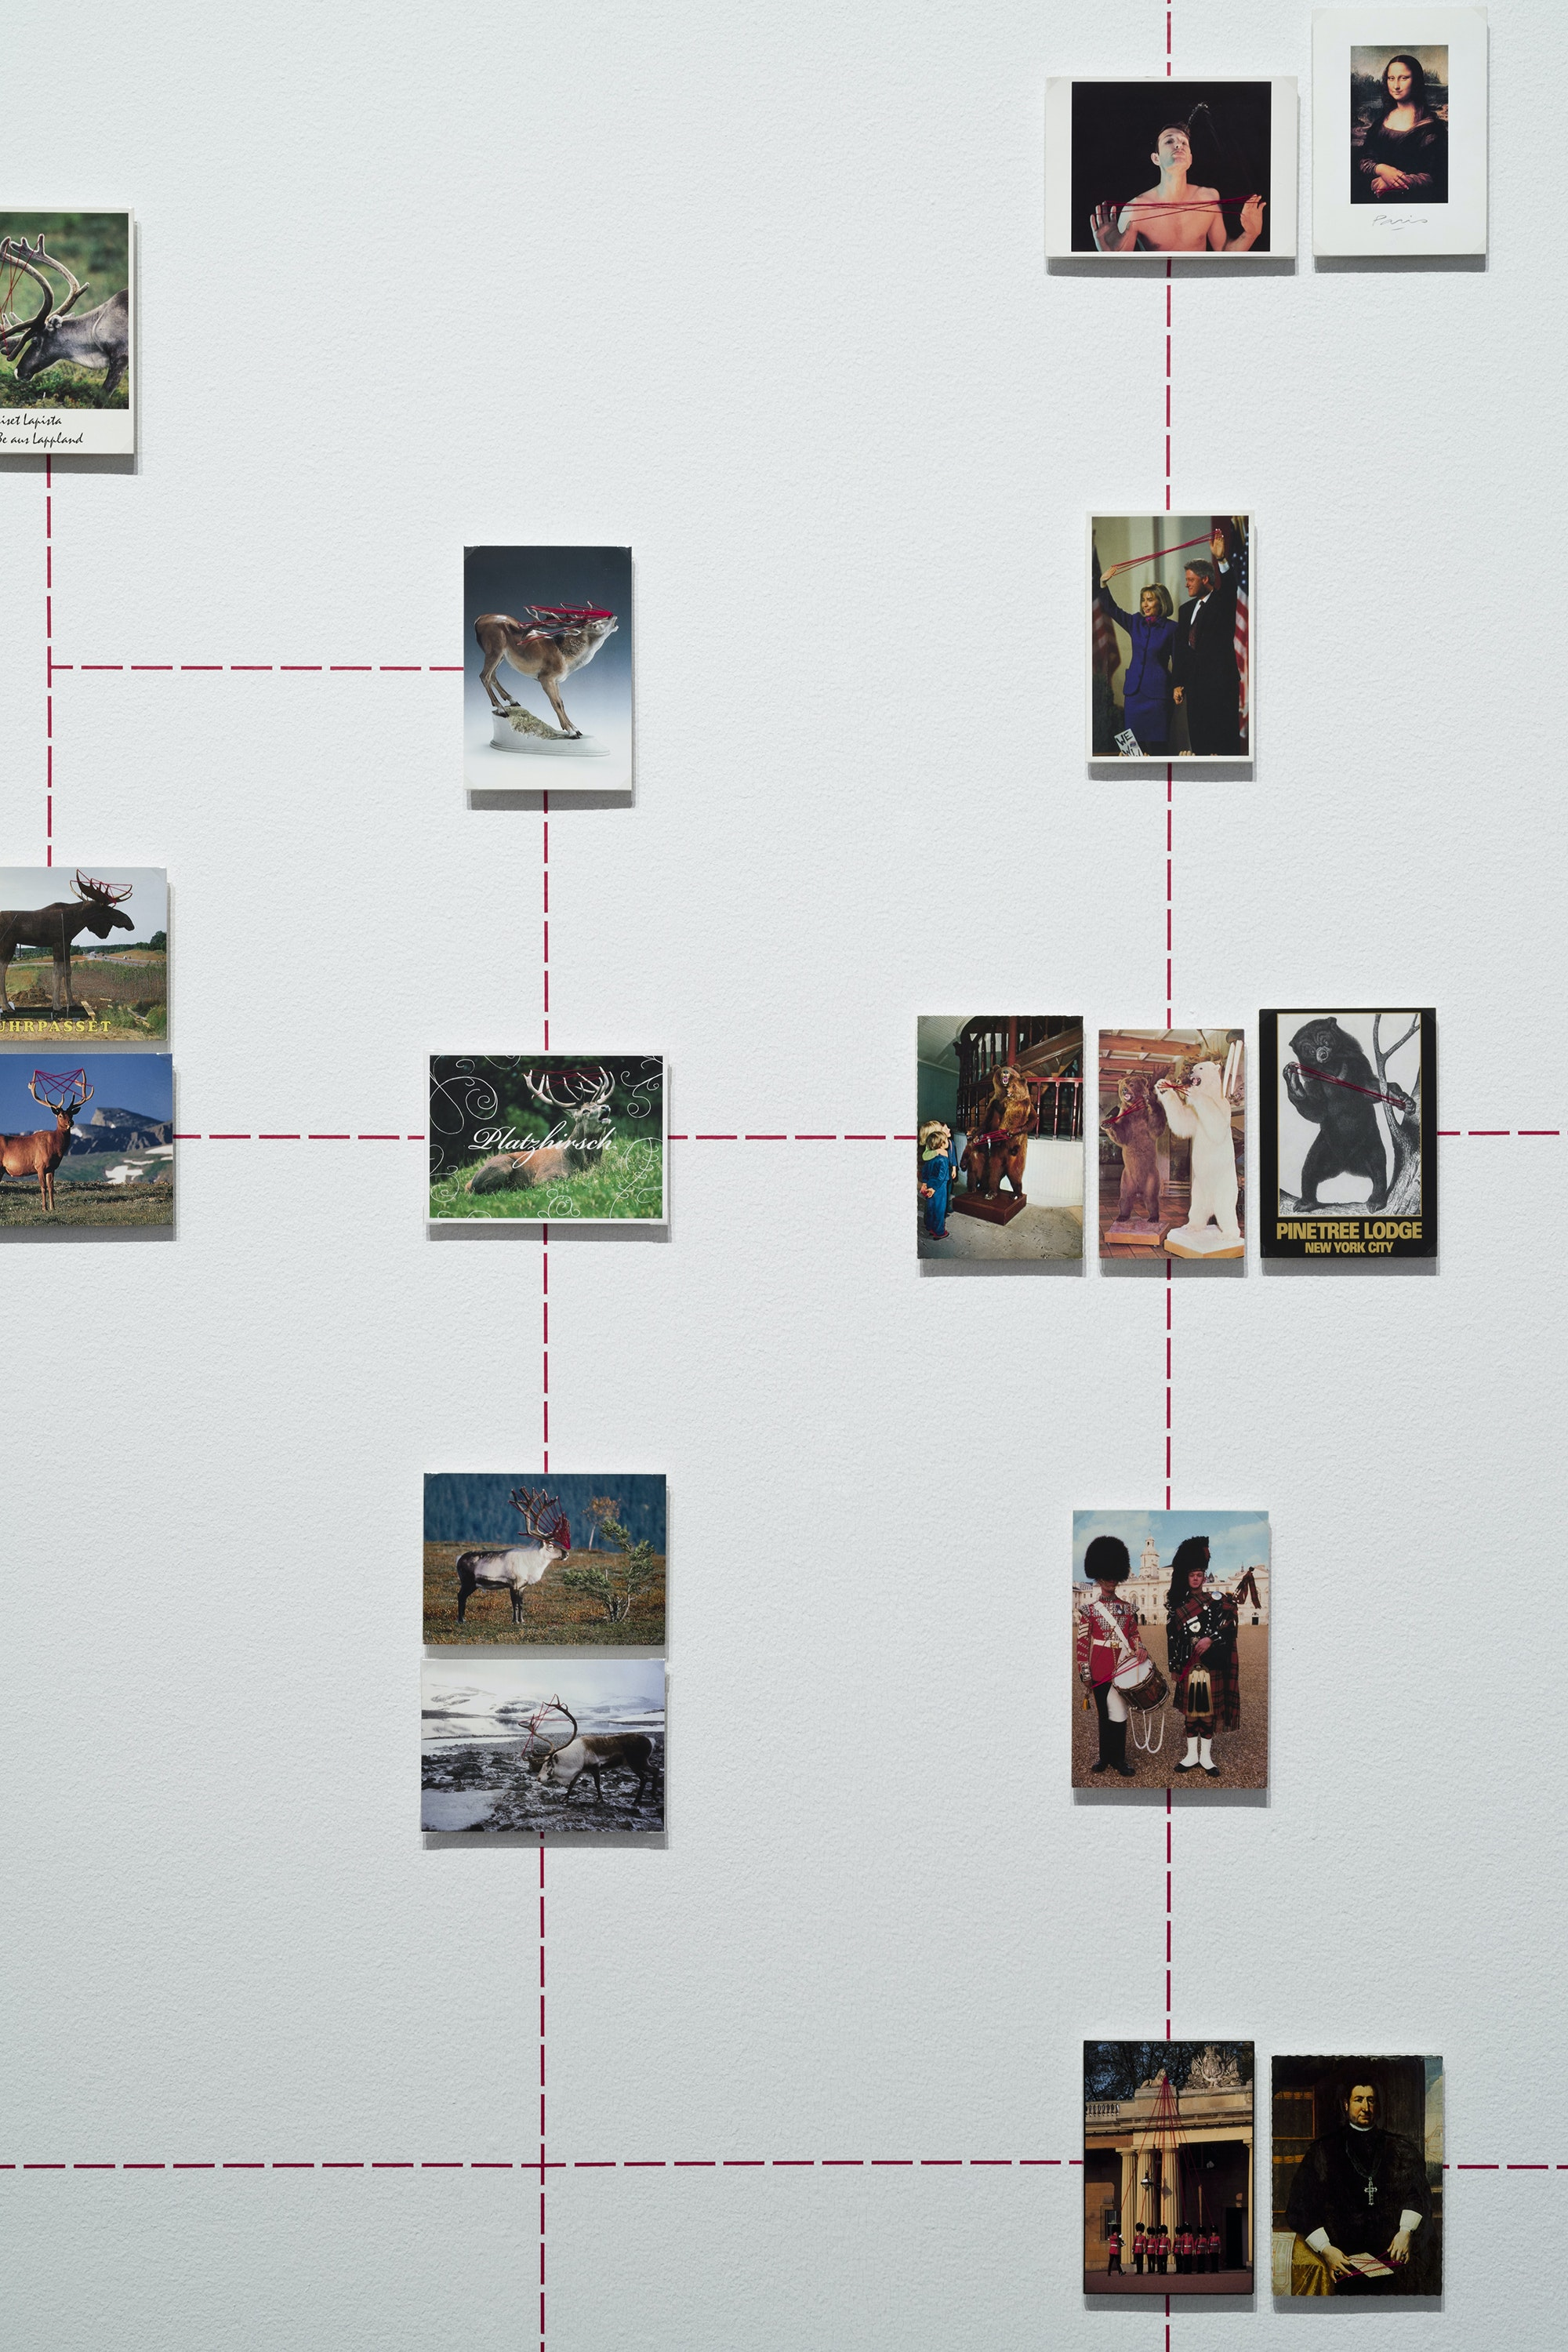 Nina Katchadourian, <em>Paranormal Postcards</em> (detail), 2001–ongoing. Mounted postcards, red sewing thread, red graphic tape on wall, dimensions variable. © Nina Katchadourian. Courtesy Pace Gallery.